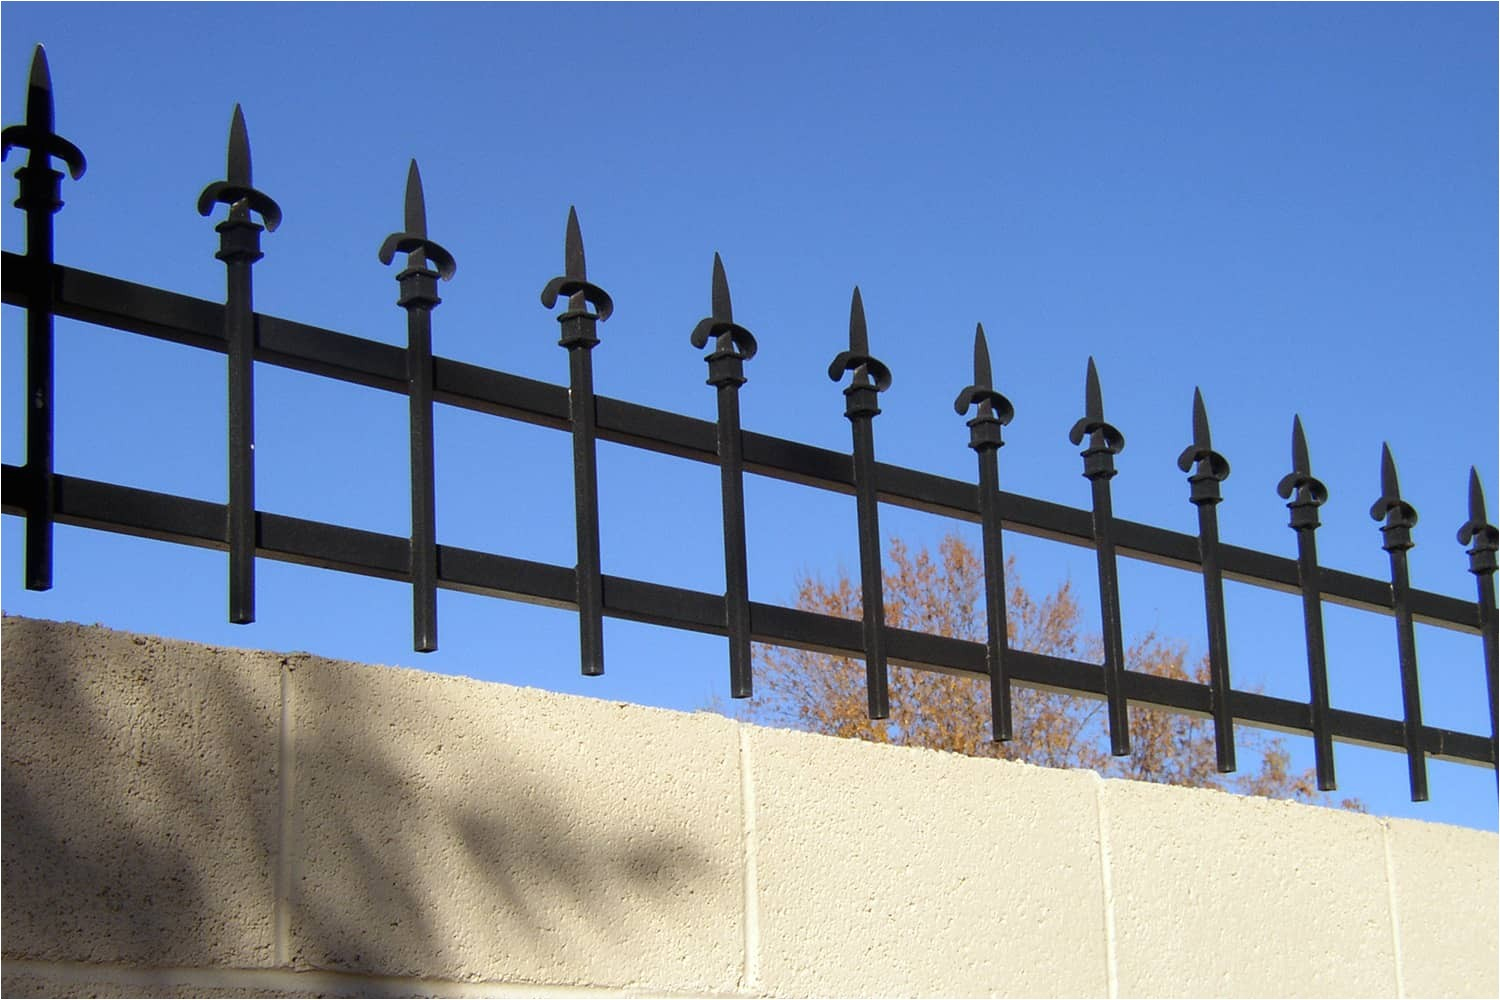 decorative wrought iron fencing examples